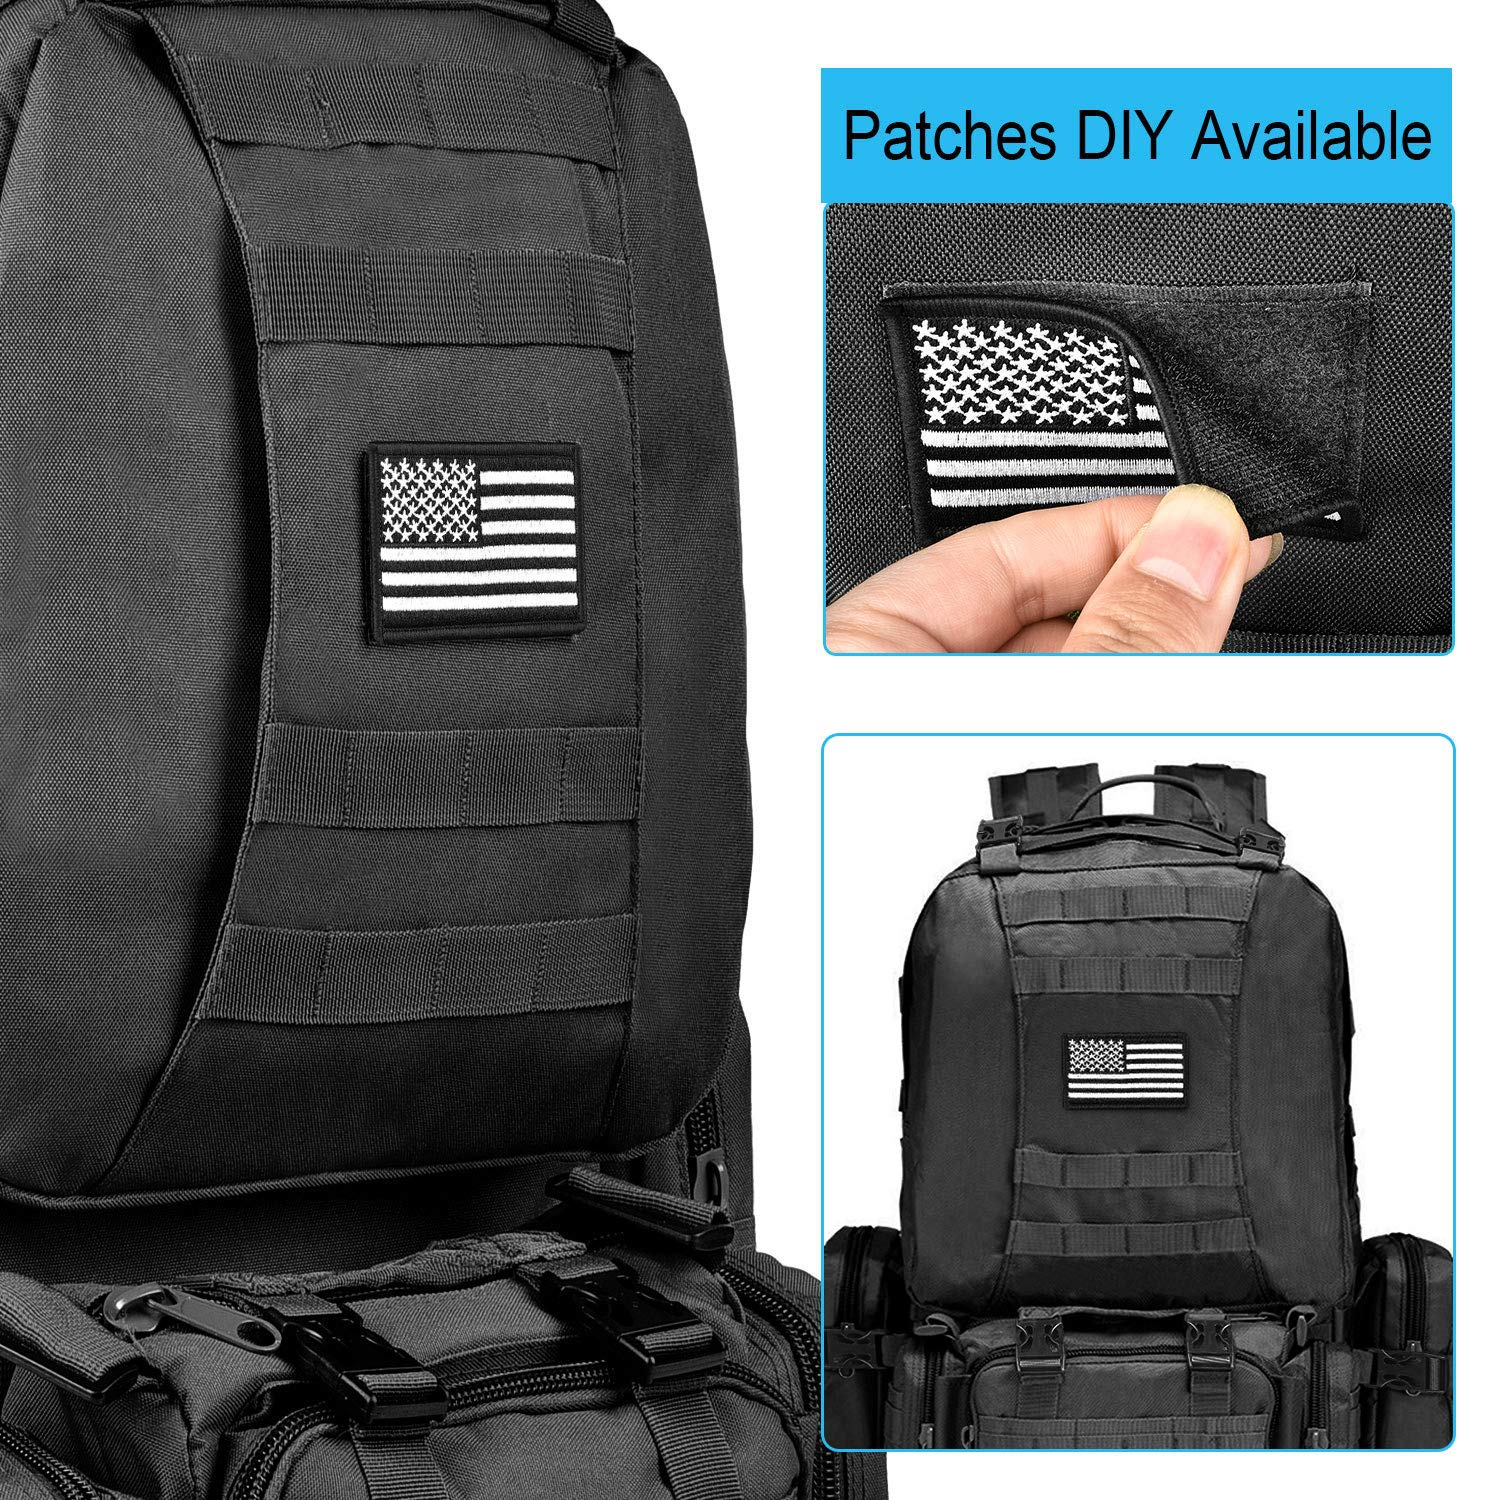 CVLIFE Tactical Military Backpack 60L Built-up Army Rucksacks Outdoor 3 Day Assault Pack Combat Molle Backpack for Hunting Hiking Fishing with Flag Patch Black by CVLIFE (Image #4)